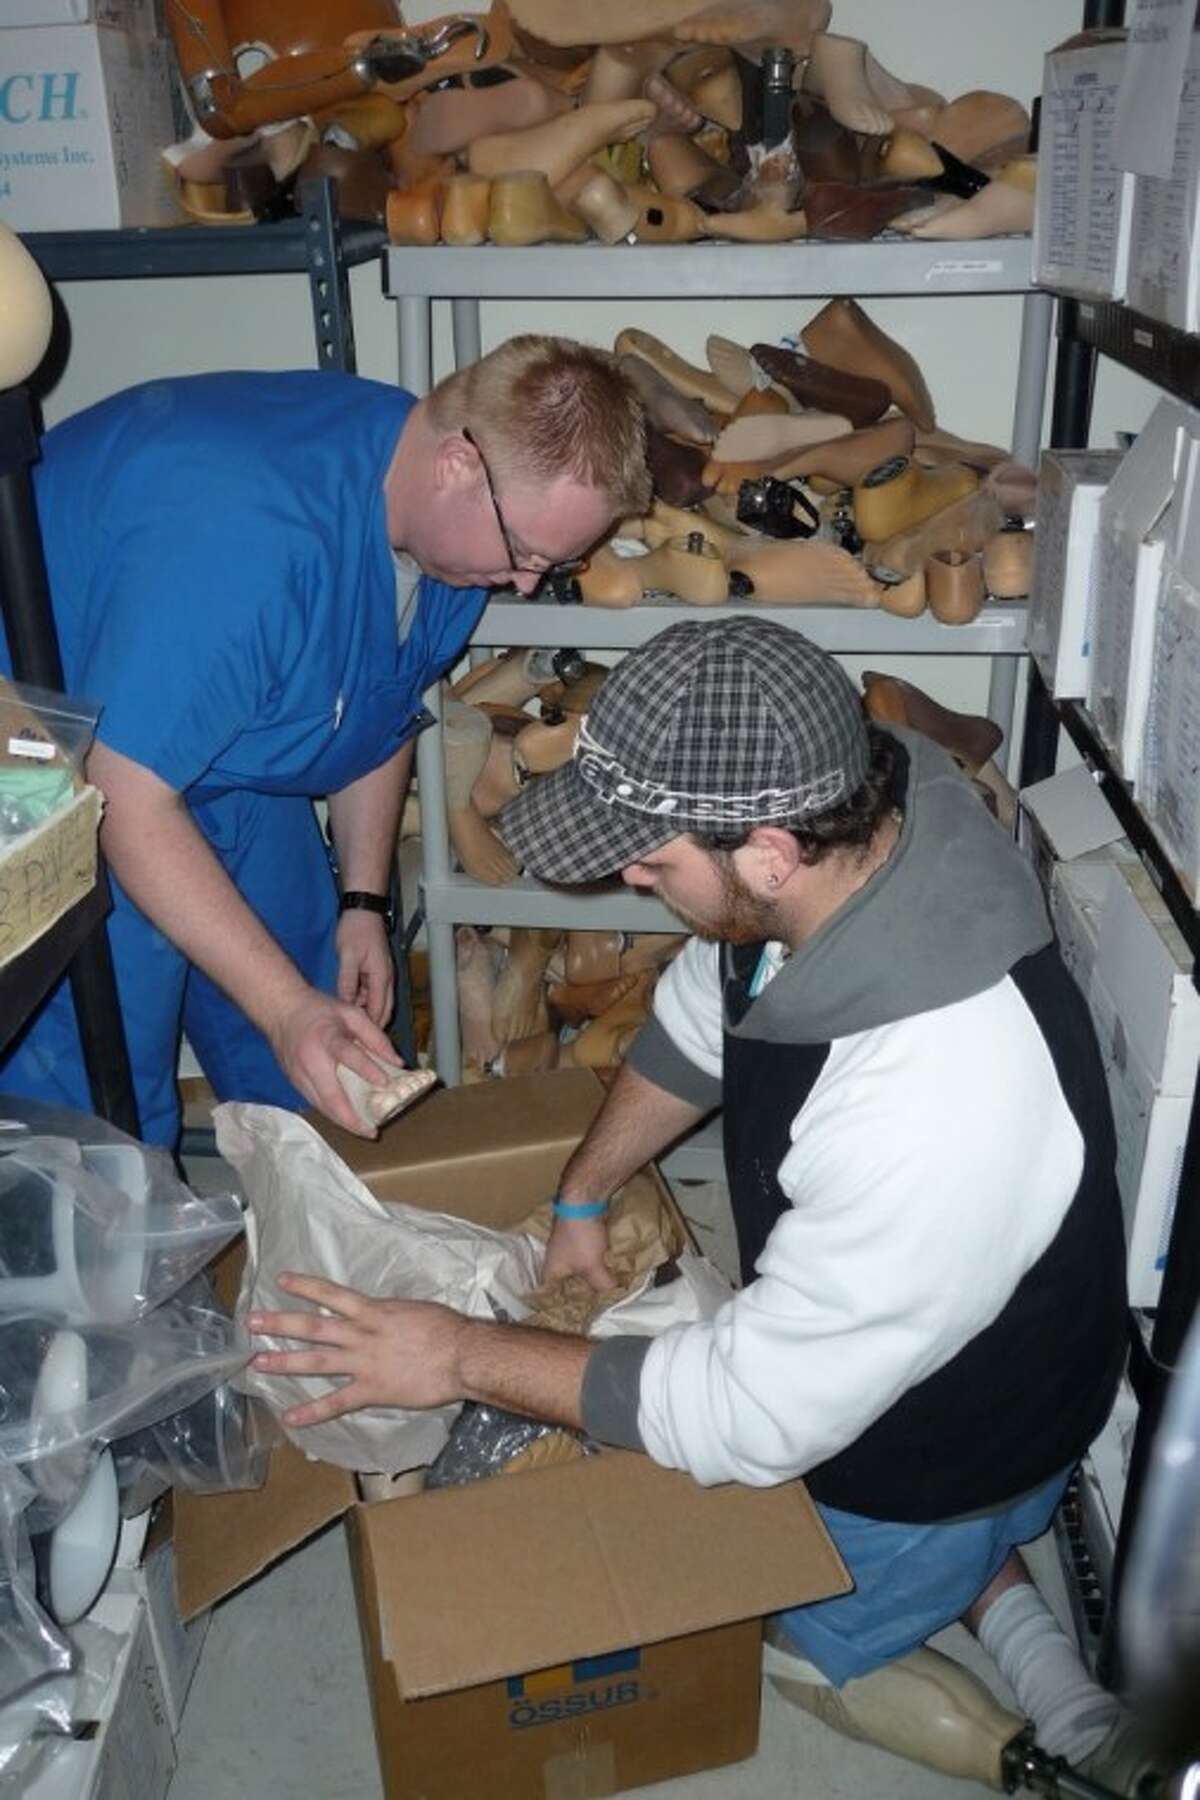 Amputee & Prosthetic Center employees Nick Glebowski and Aaron Johnson pack prosthetic components to send to people that lost limbs in Haiti's earthquake.